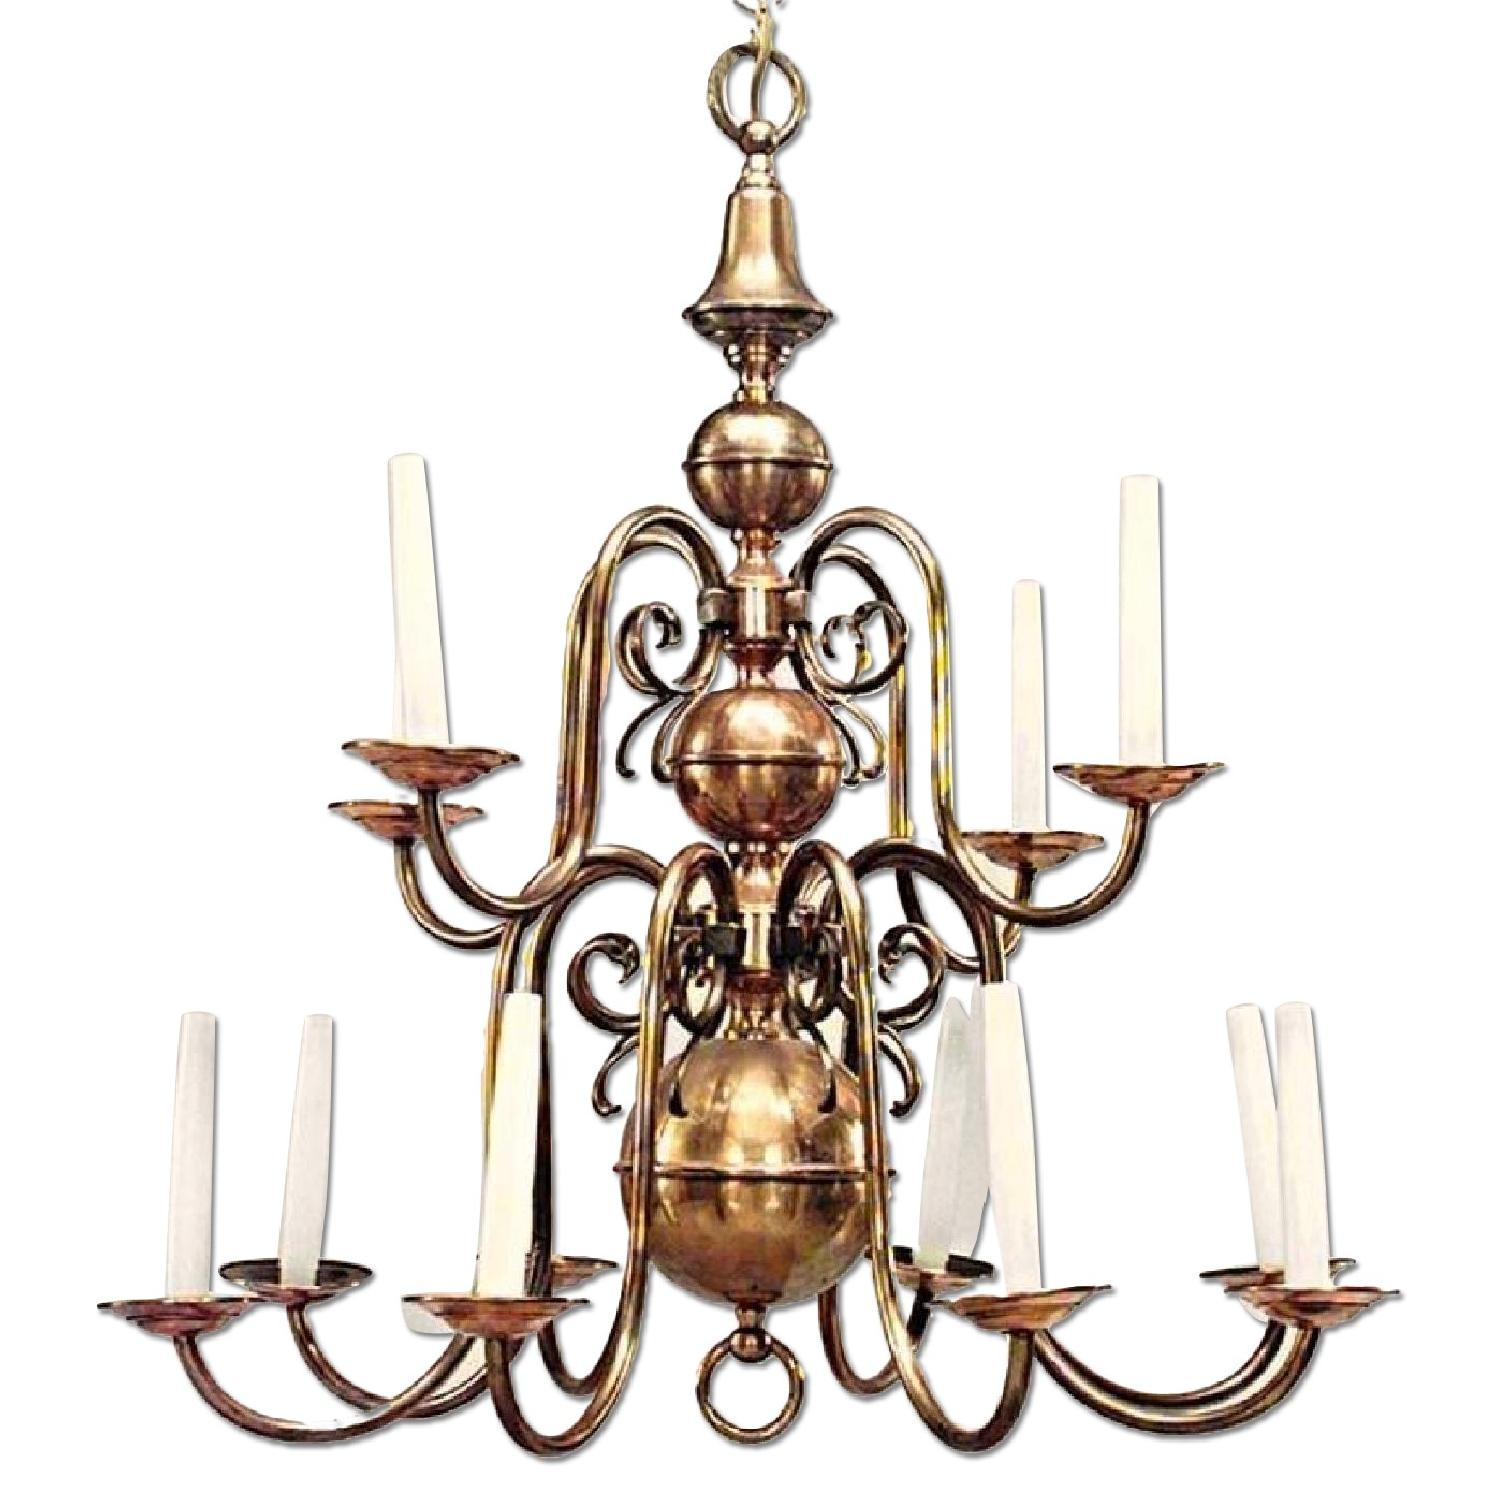 12-Arm Antique Dutch Baroque Style Copper Brass Chandelier